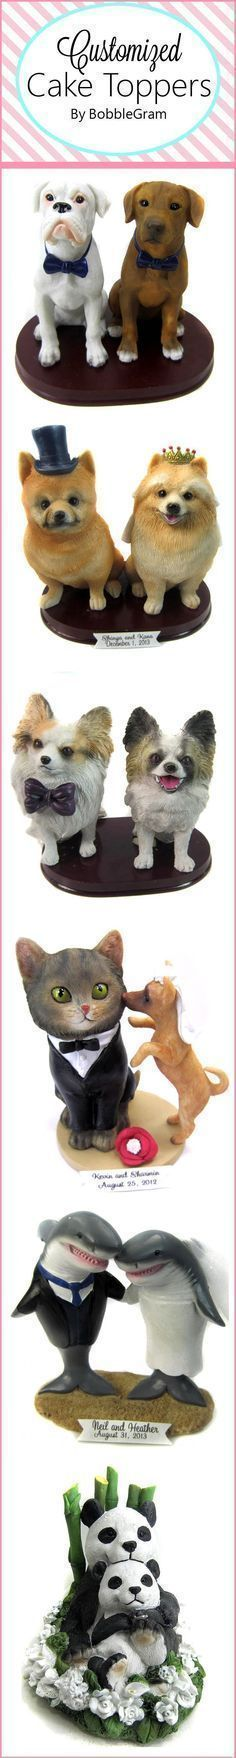 Customized wedding cake toppers from BobbleGram. We specialize in creating the most adorable cake toppers you can imagine. Include your pets! We sculpt dogs, cats, hamsters, sharks, horses, pigs, owls - you name it!